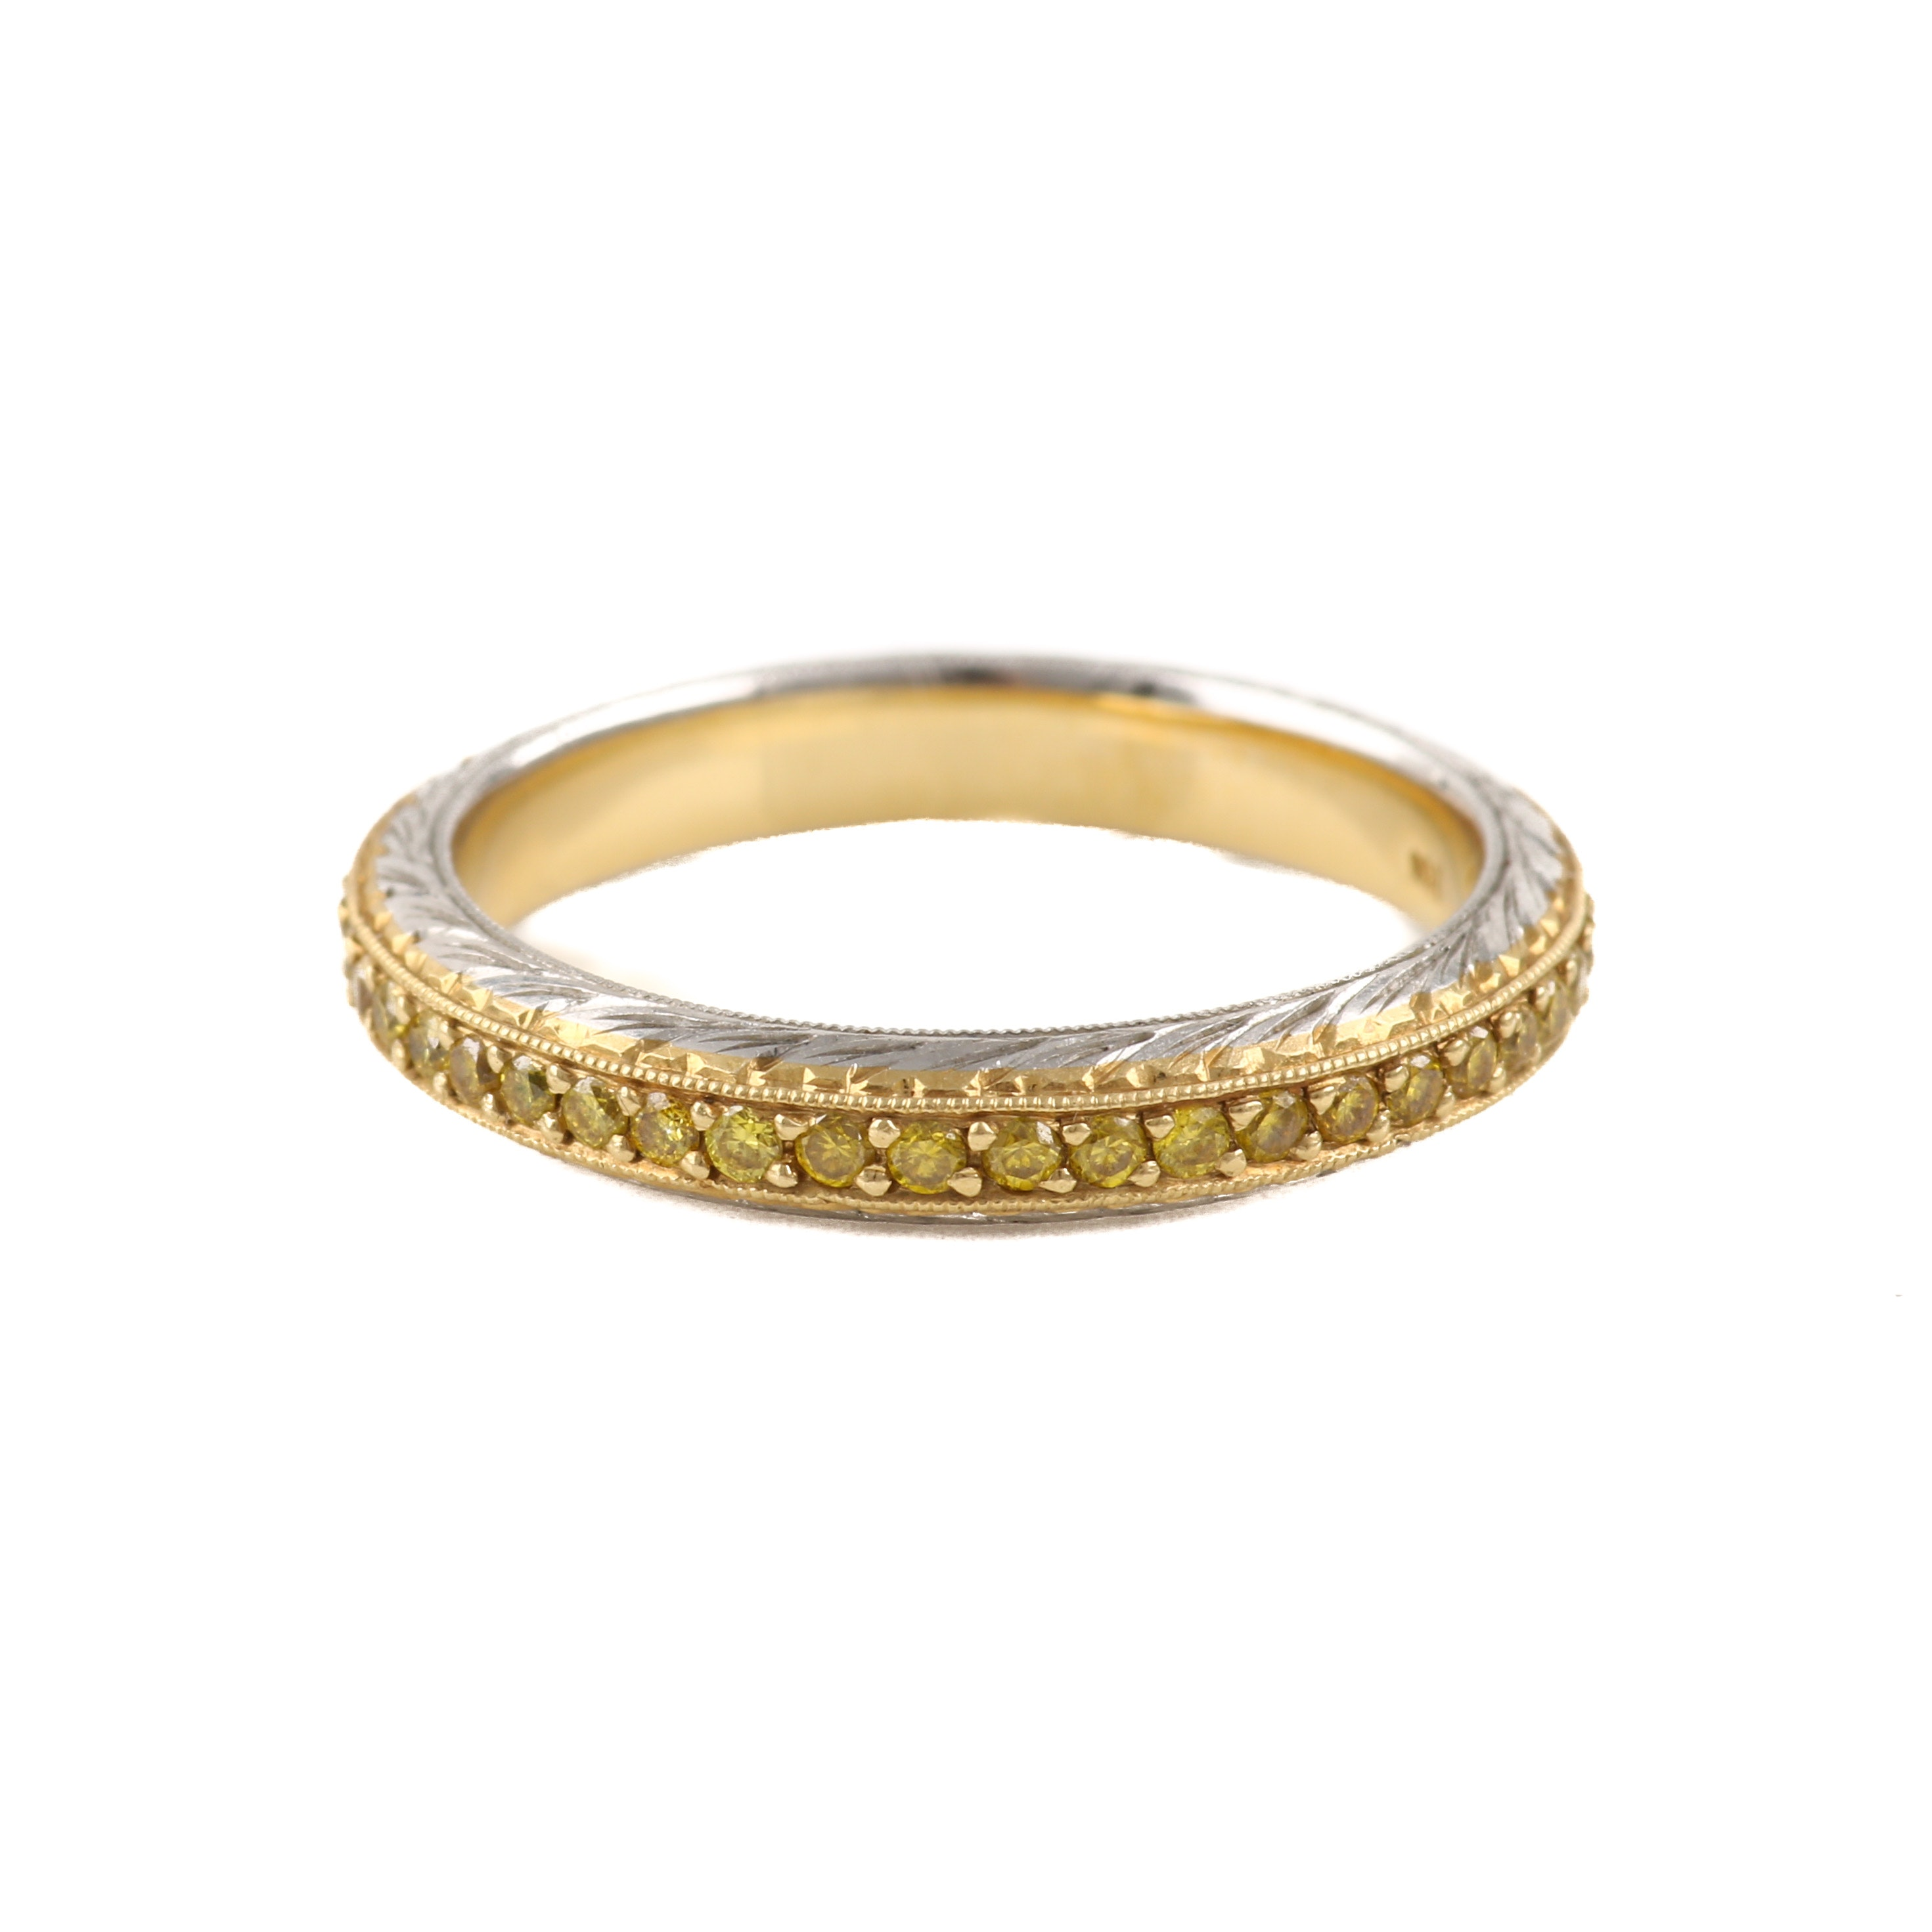 Michael Beaudry Platinum and Yellow Diamond Eternity Band With 18K Gold Accents